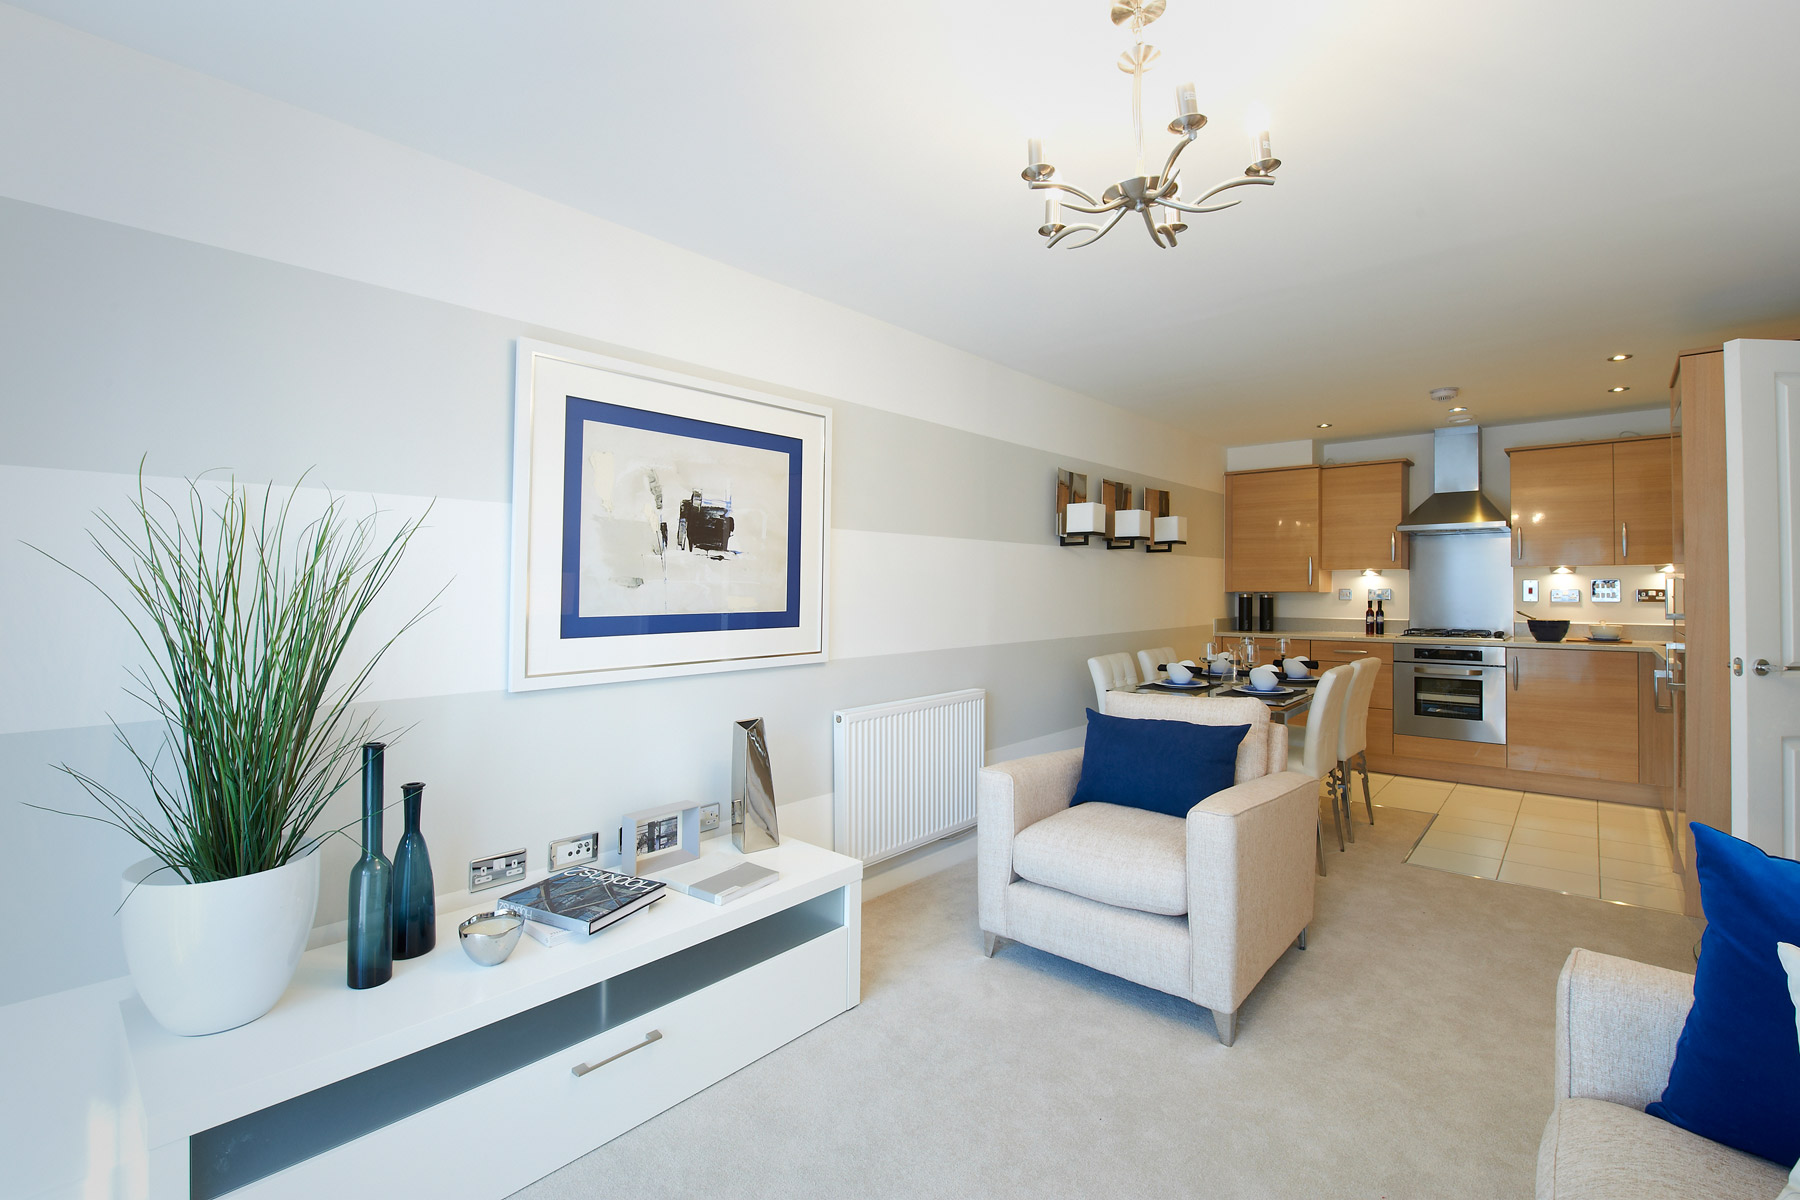 A typical Taylor Wimpey apartment kitchen/living room.